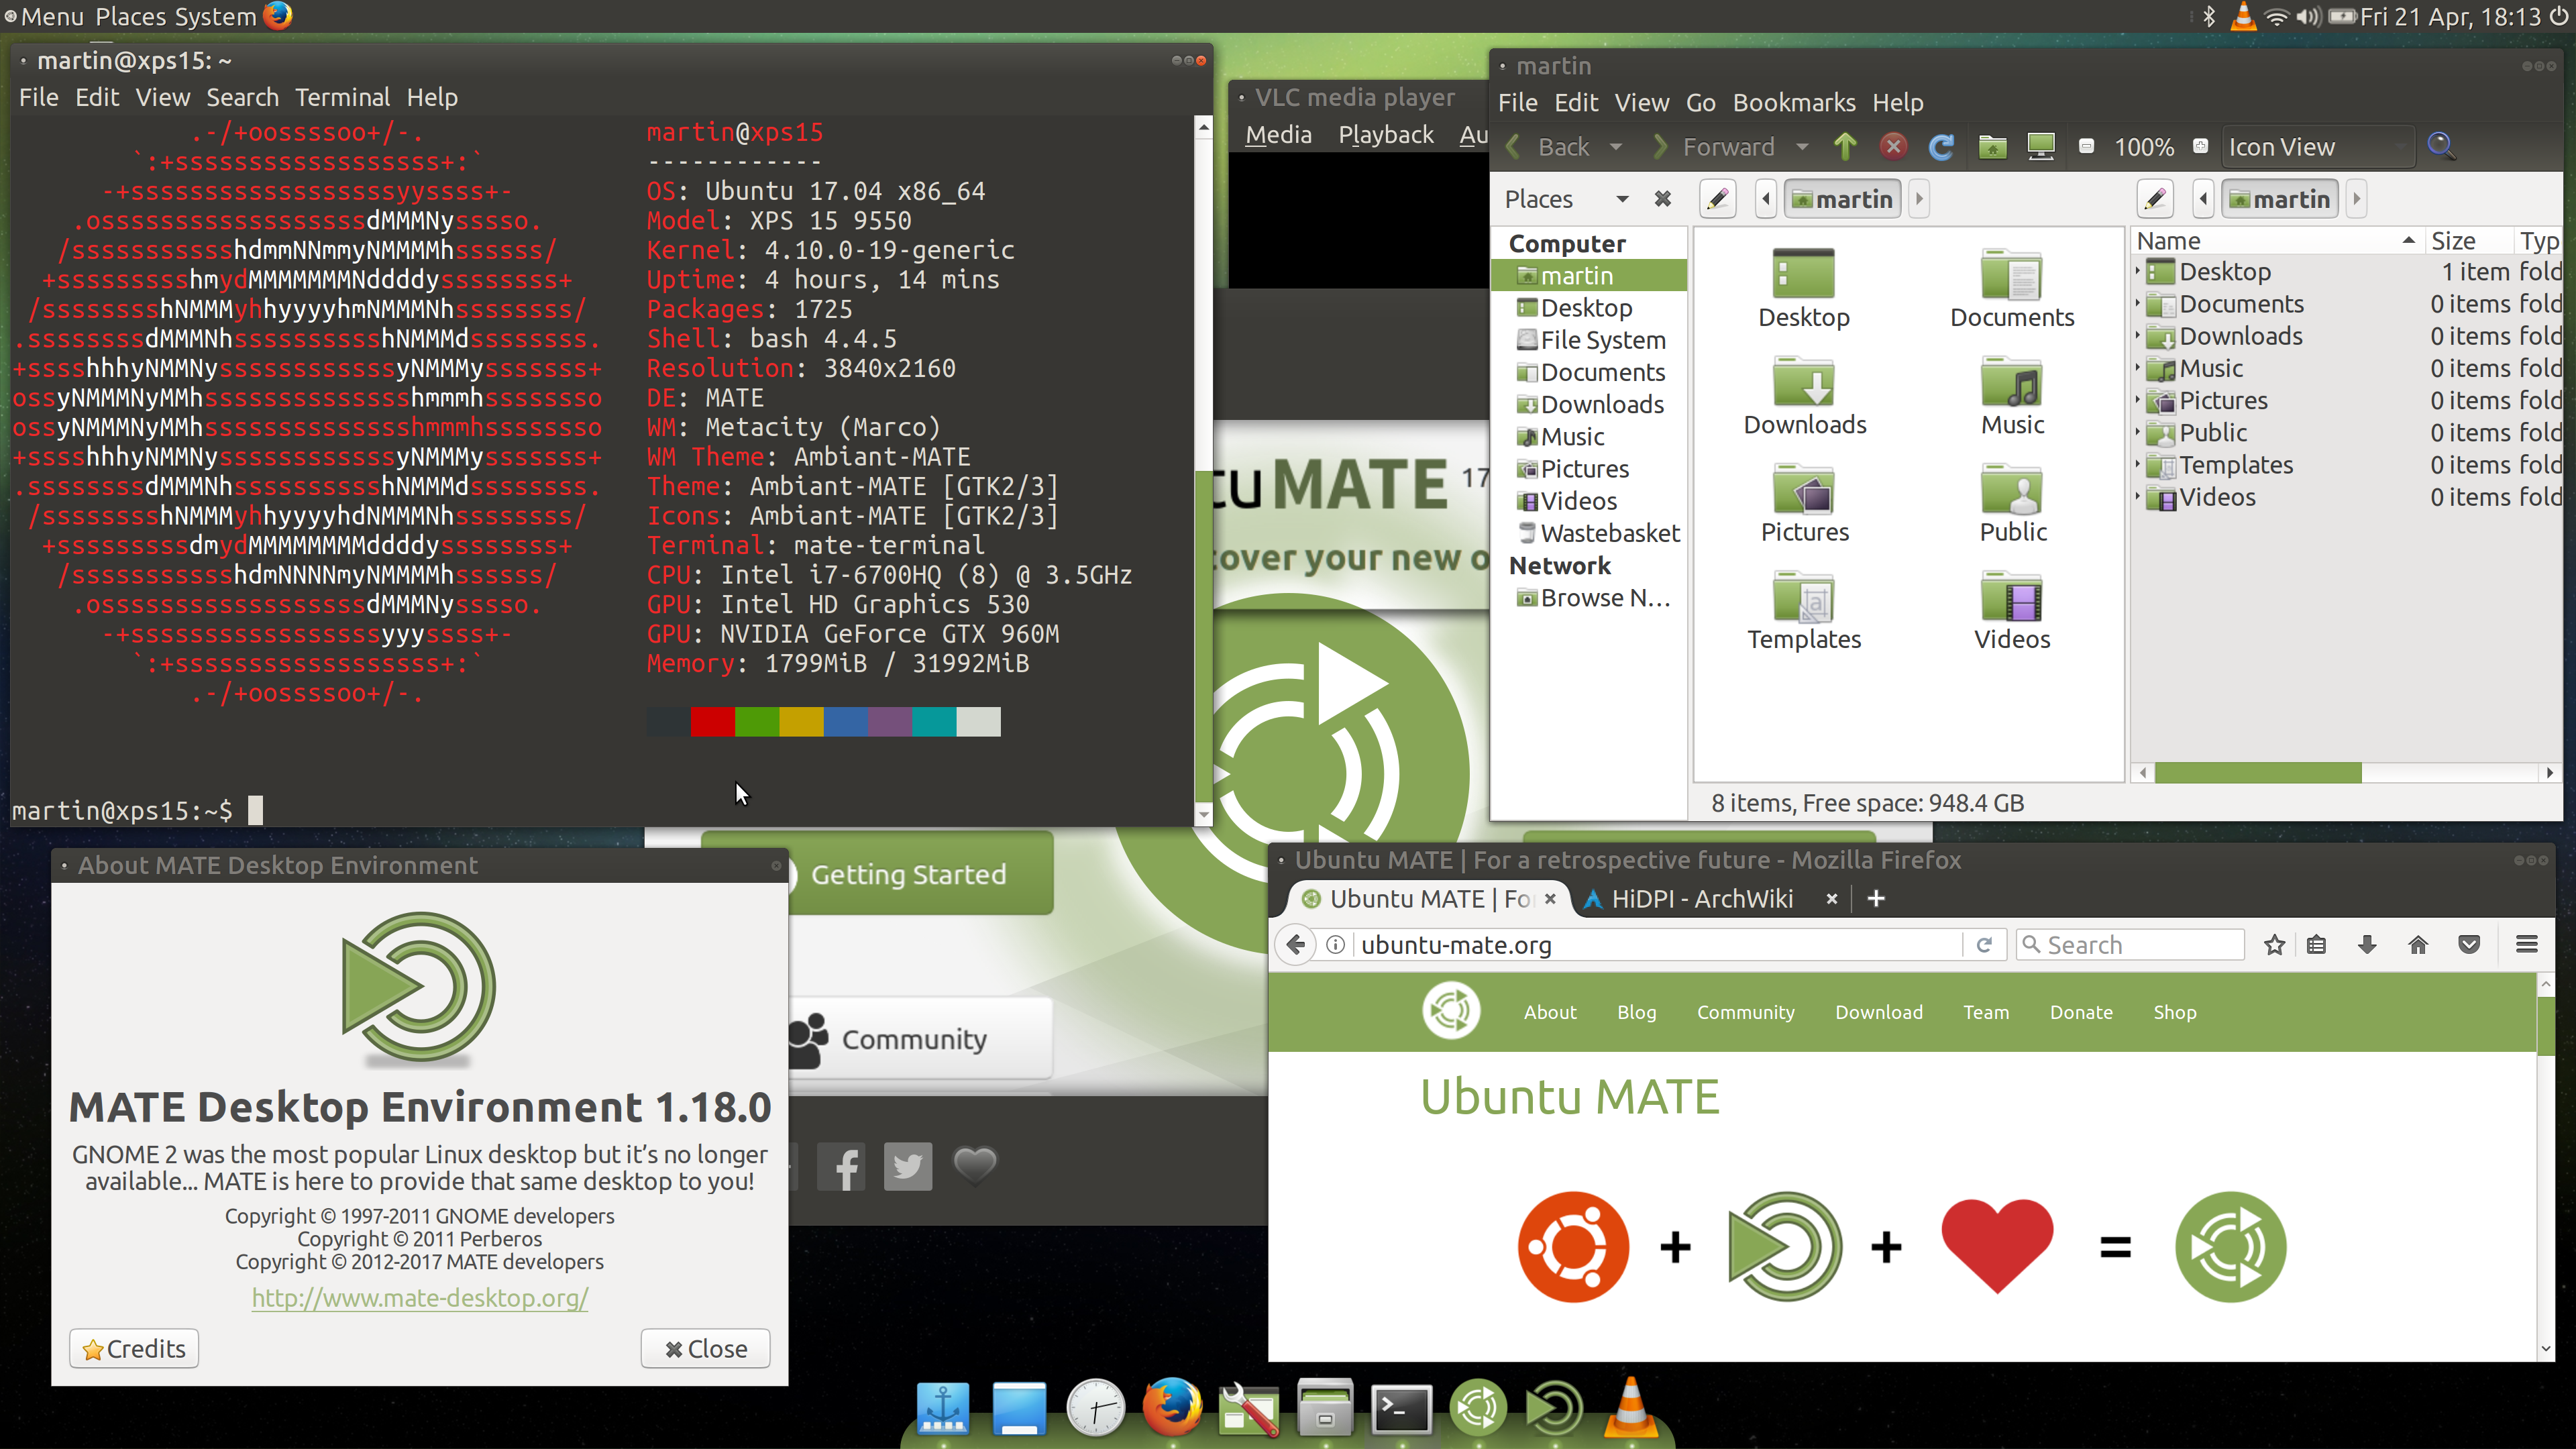 Ubuntu MATE HiDPI - First Steps - Screenshots - Ubuntu MATE Community